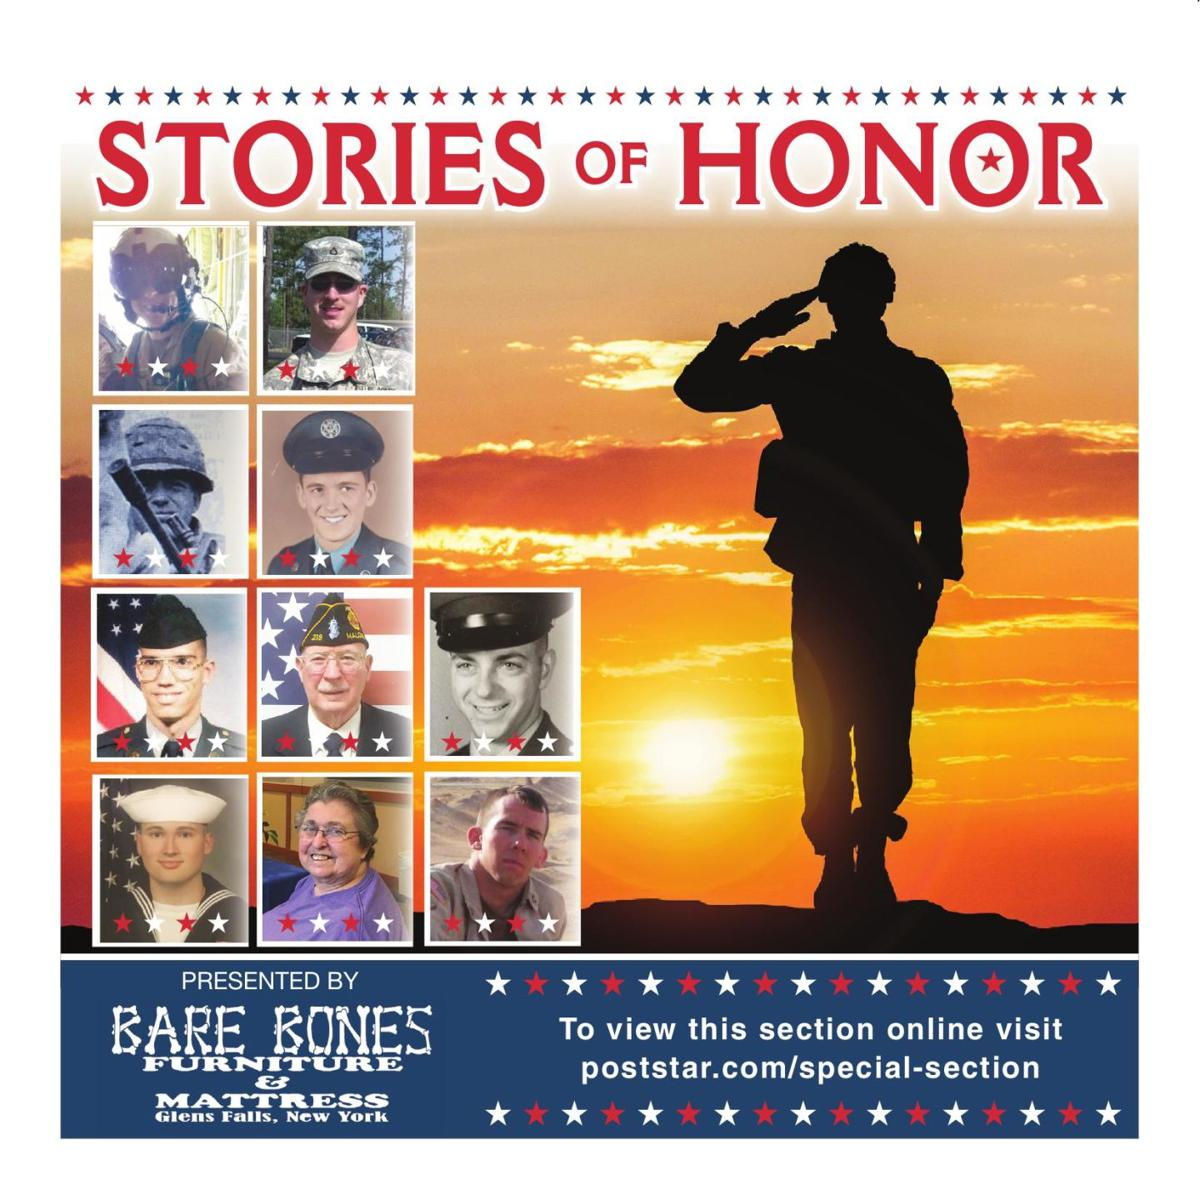 Stories of Honor 9.18.19